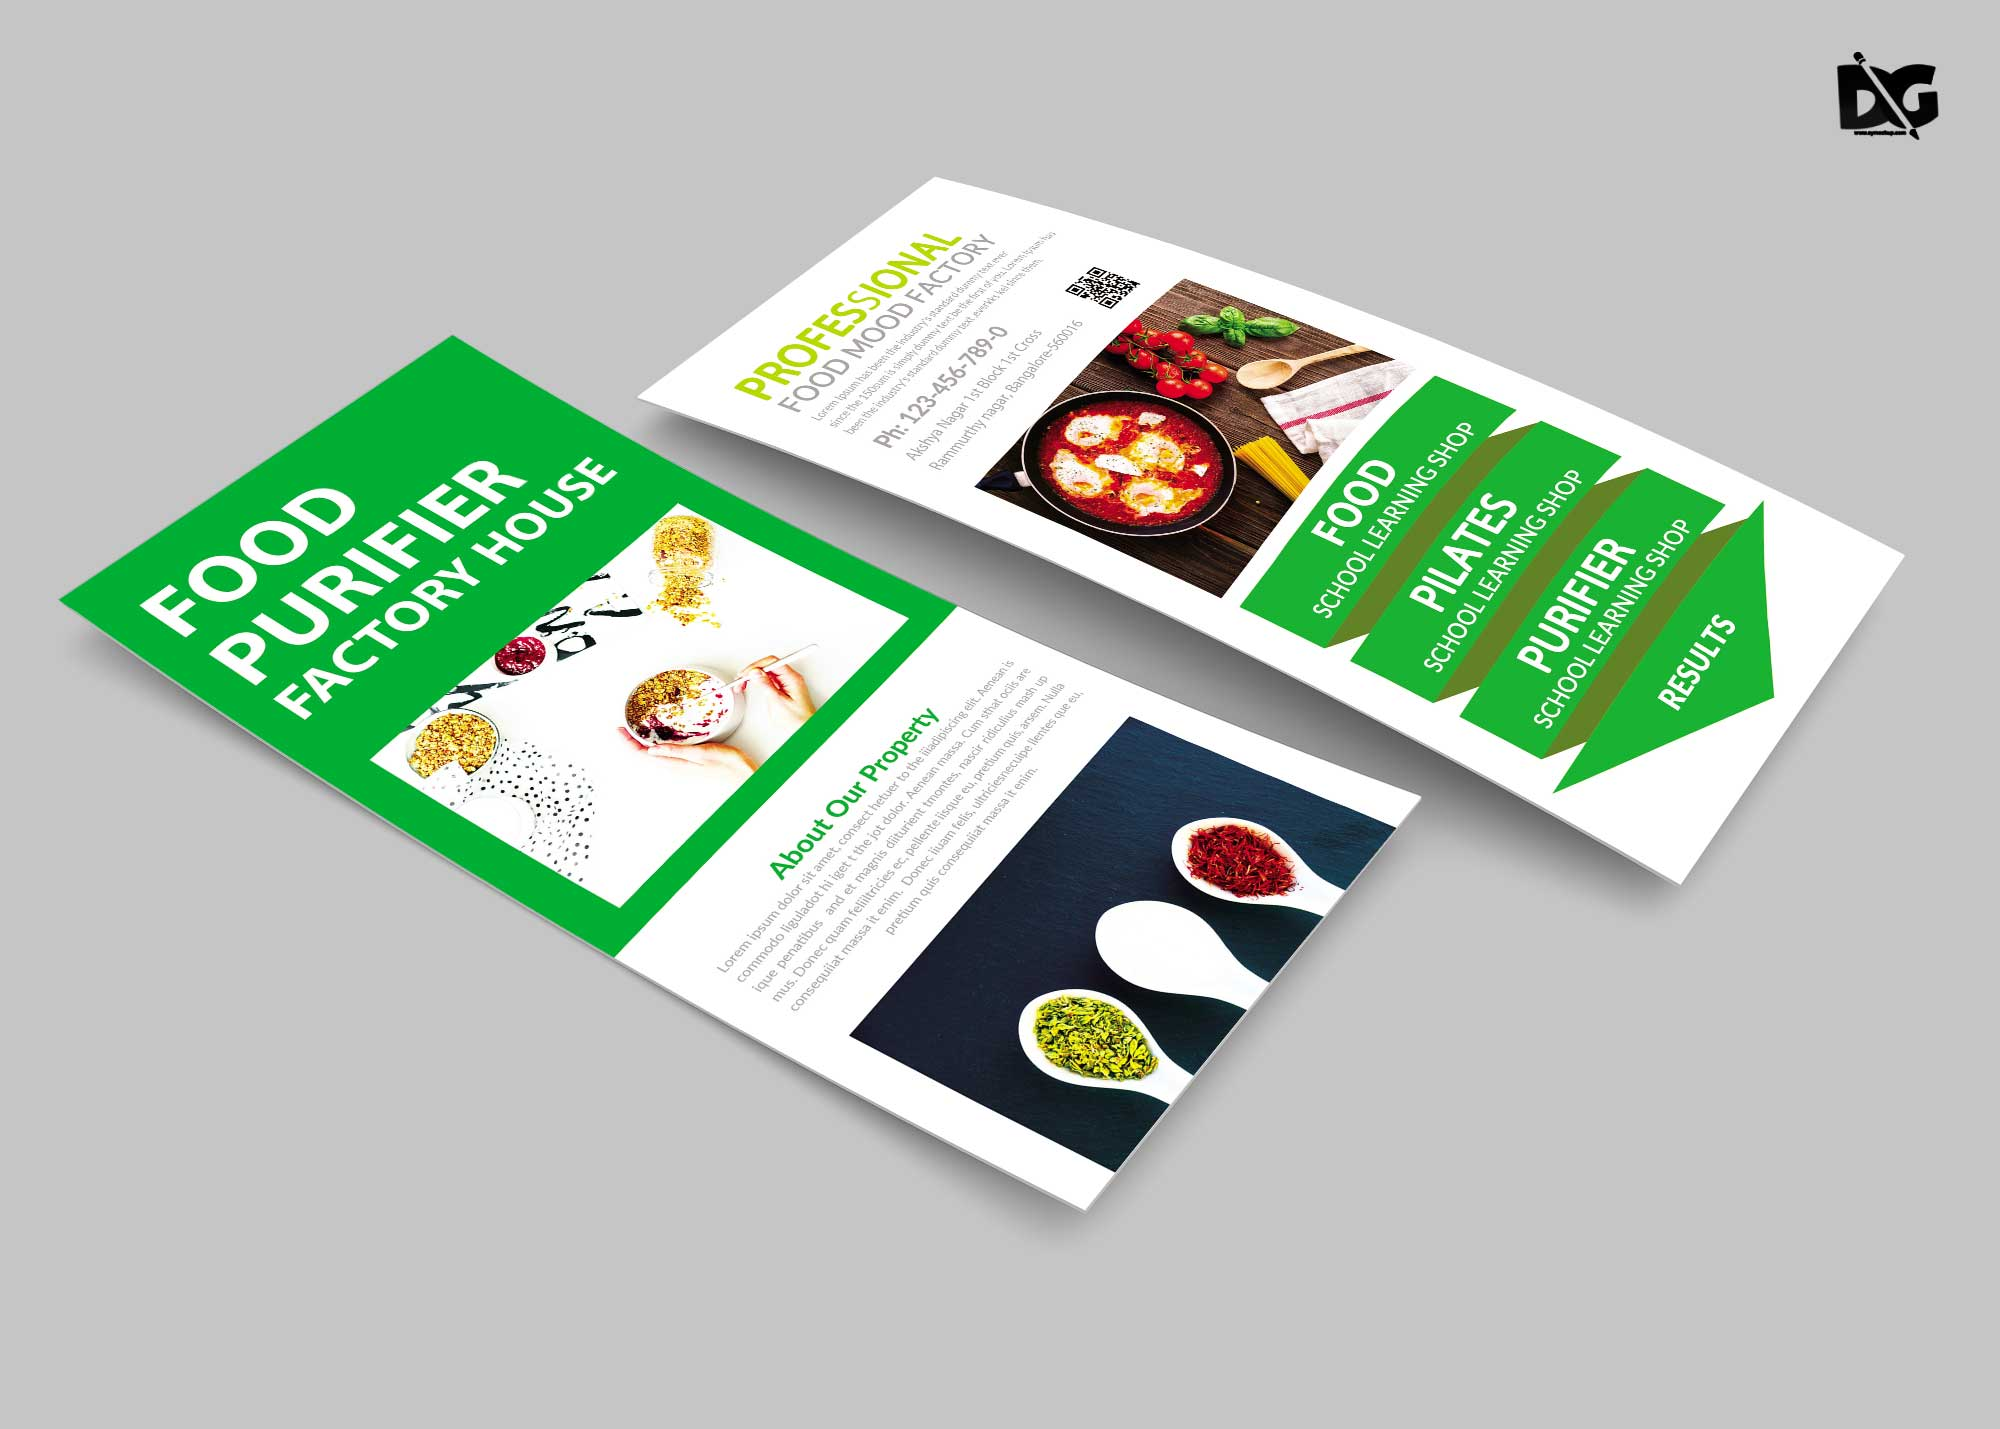 Free Download Food Packaging Rack Card Template